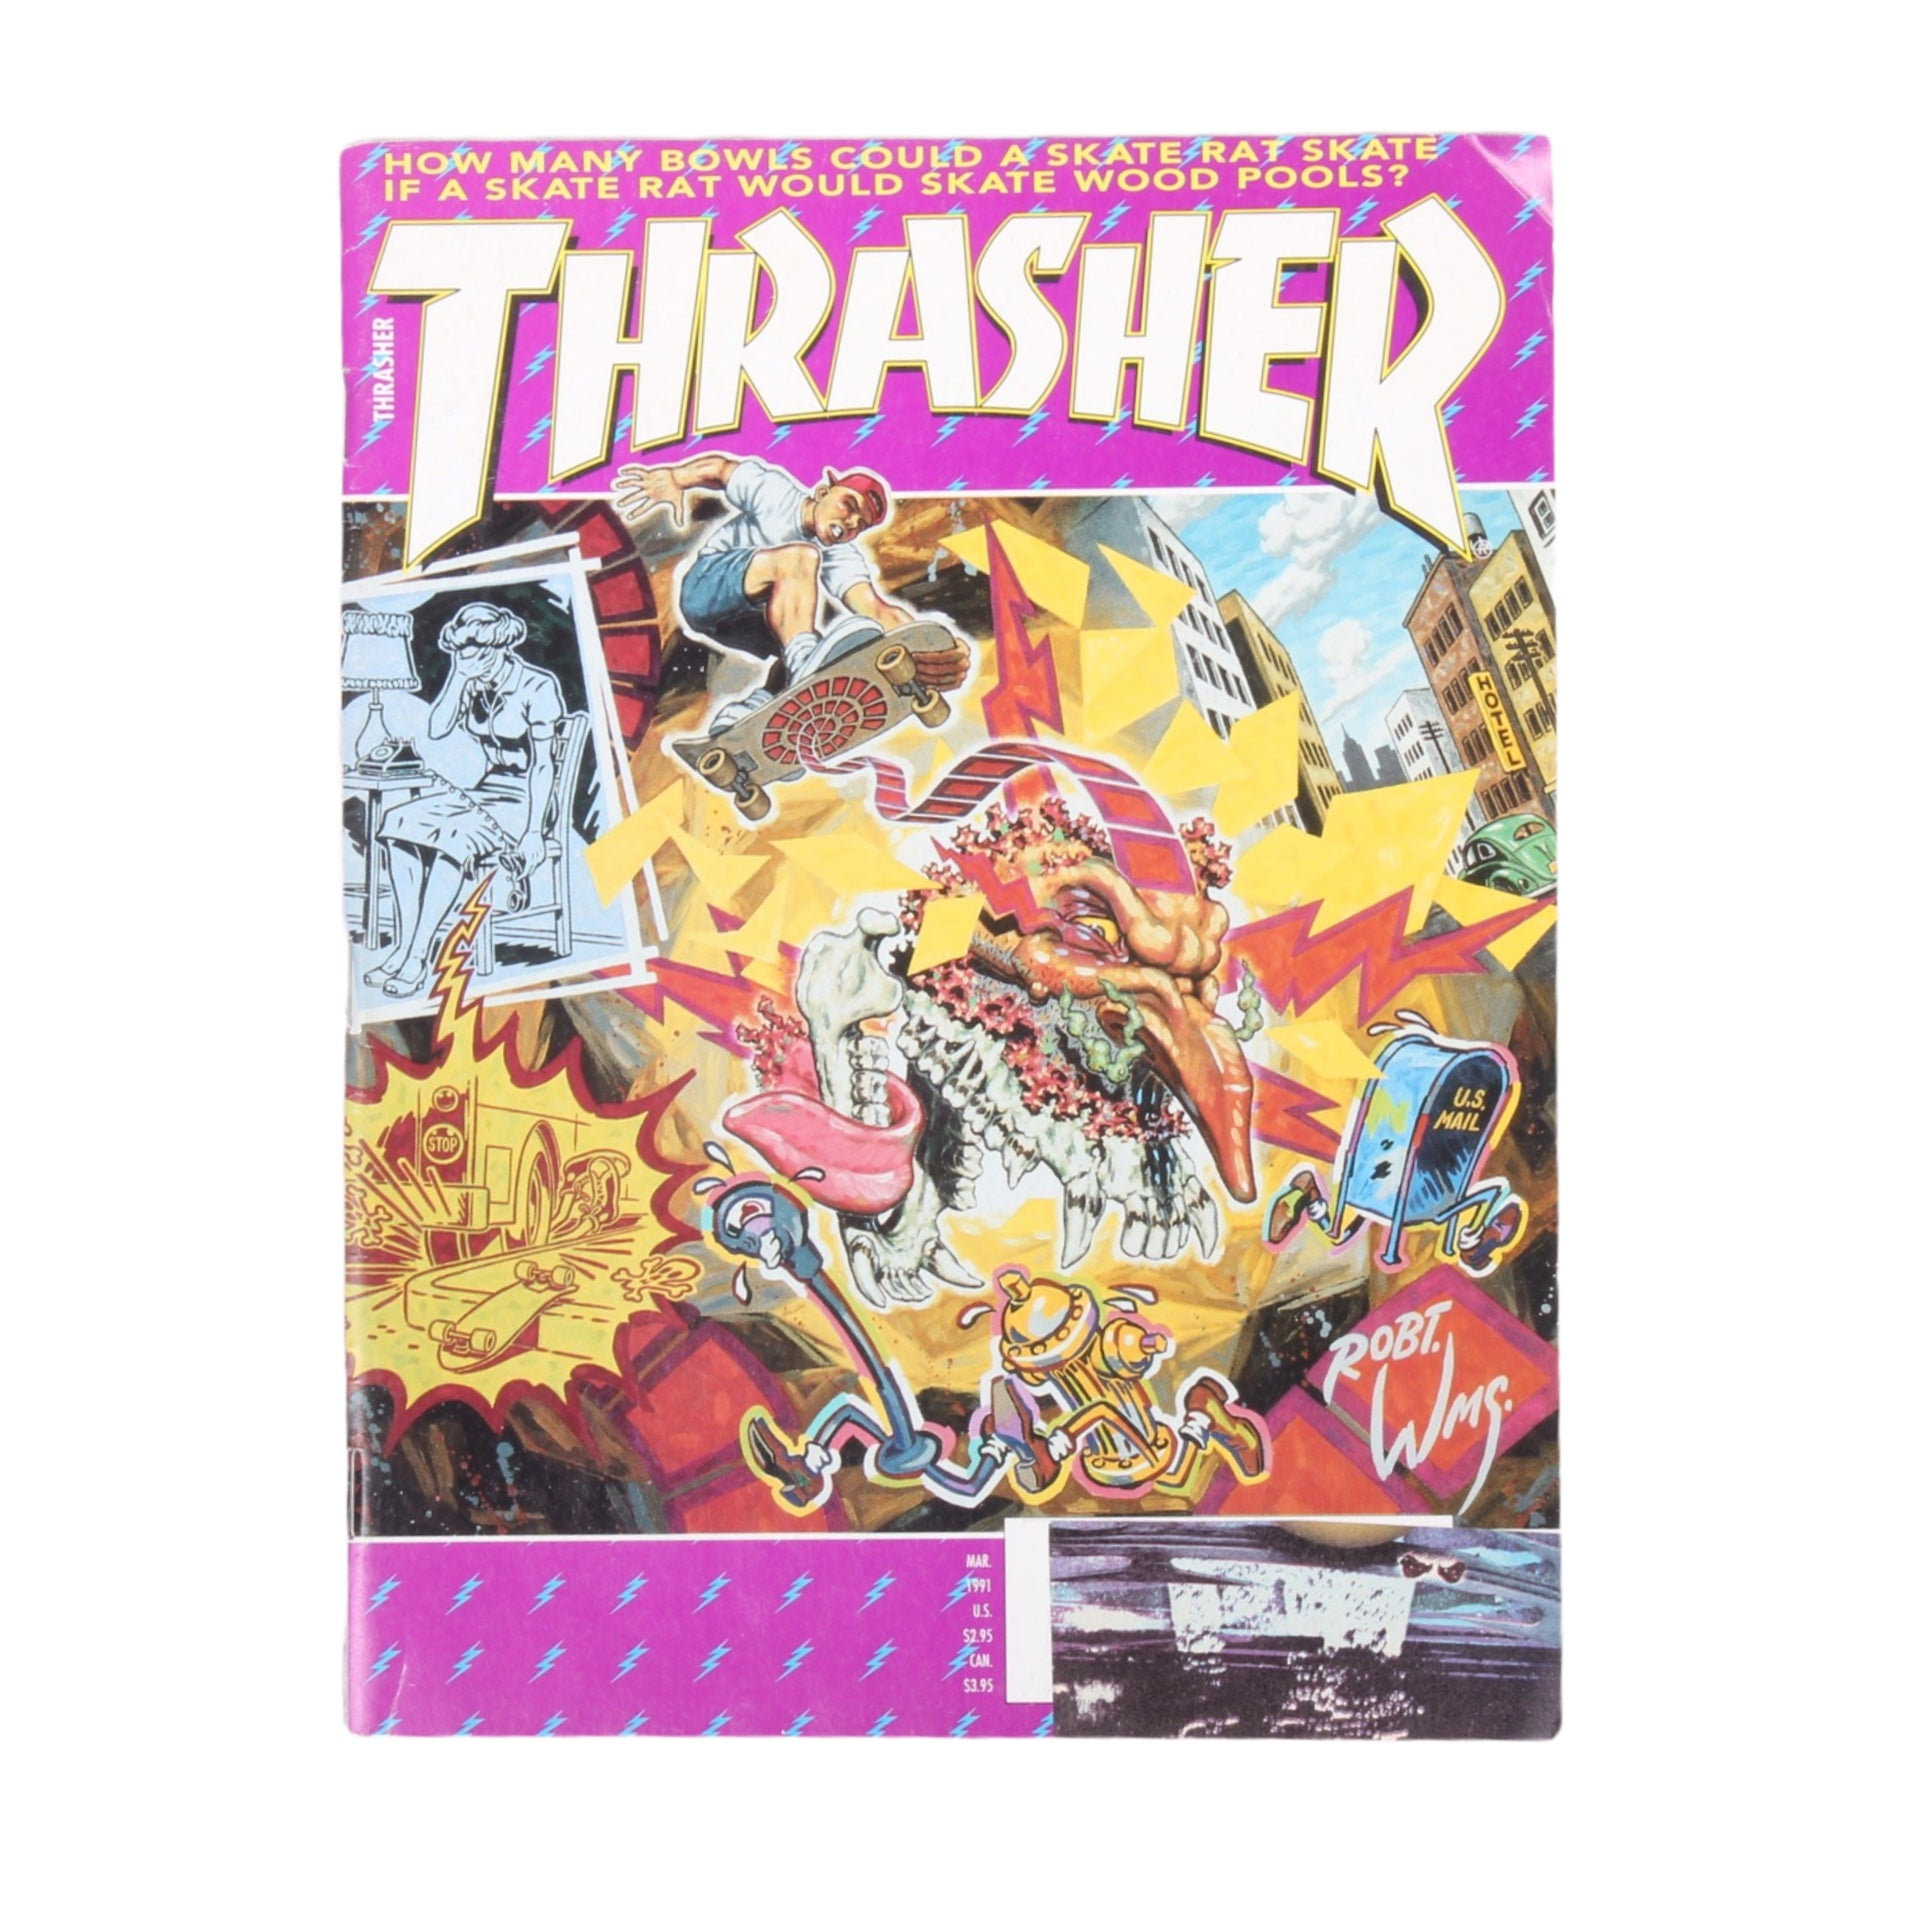 Overripe Thrasher Magazine March 1991